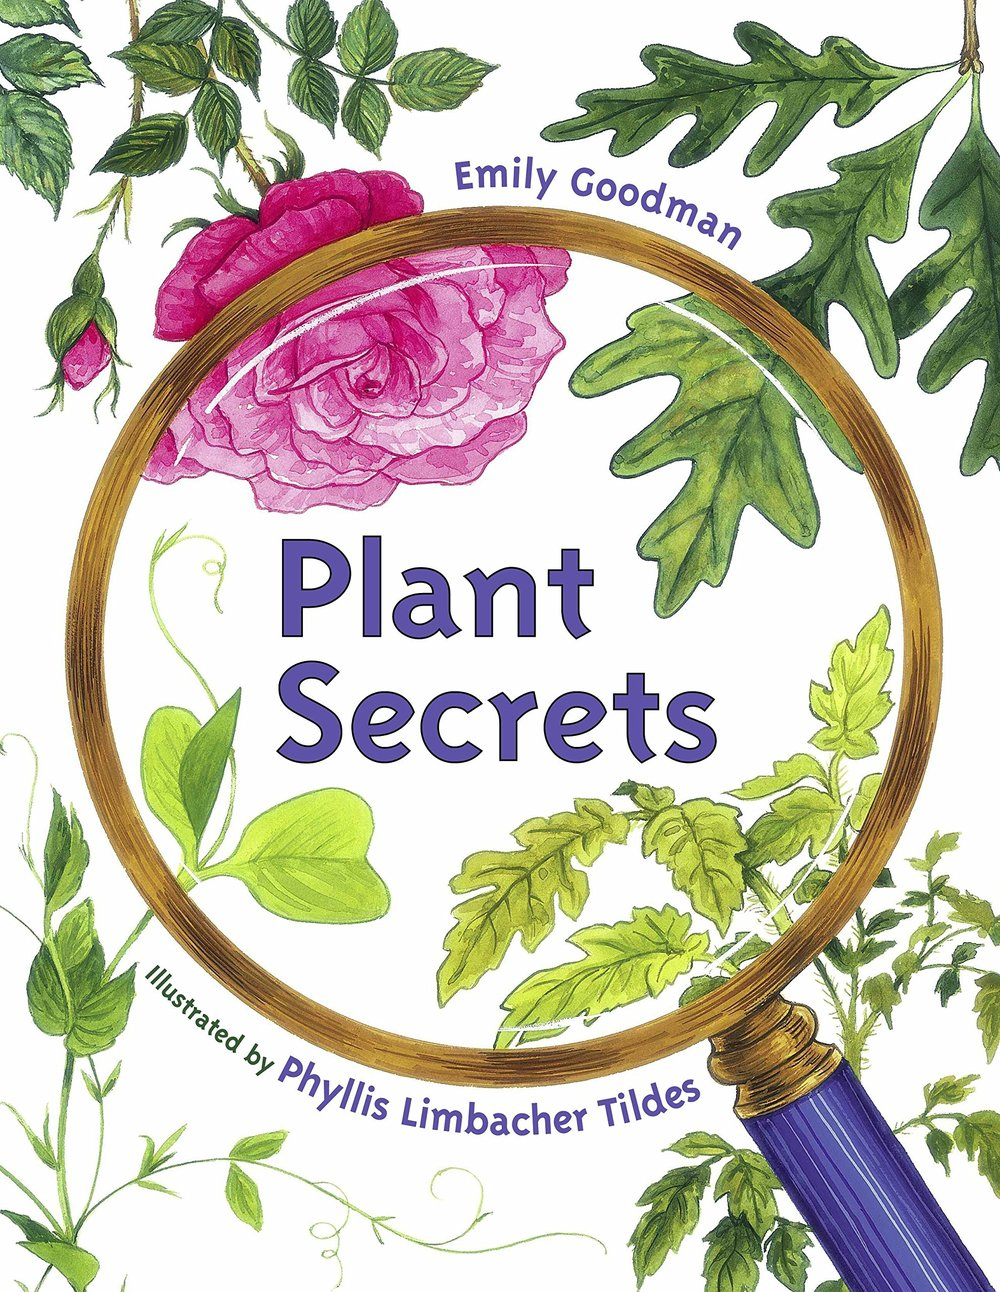 Plant Secrets - A simple and playfully curious introduction to botany and primary nature science. You can't go wrong with a book about nature! It is so much more than that - nature teaches us more about every element of being human than anything else.